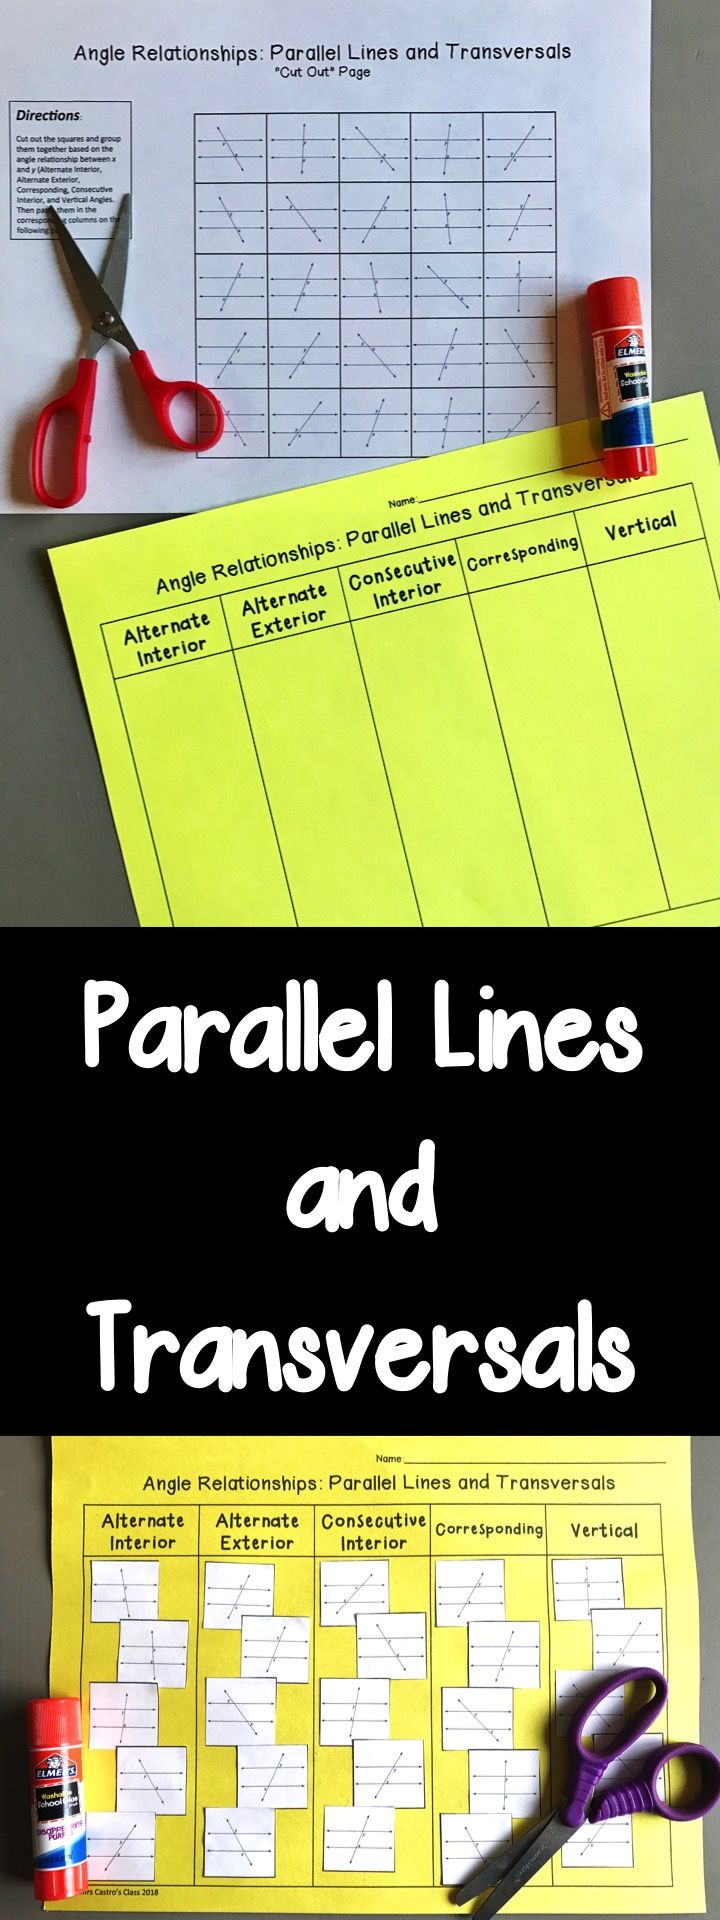 Parallel Lines and Transversals Activity for High School Geometry